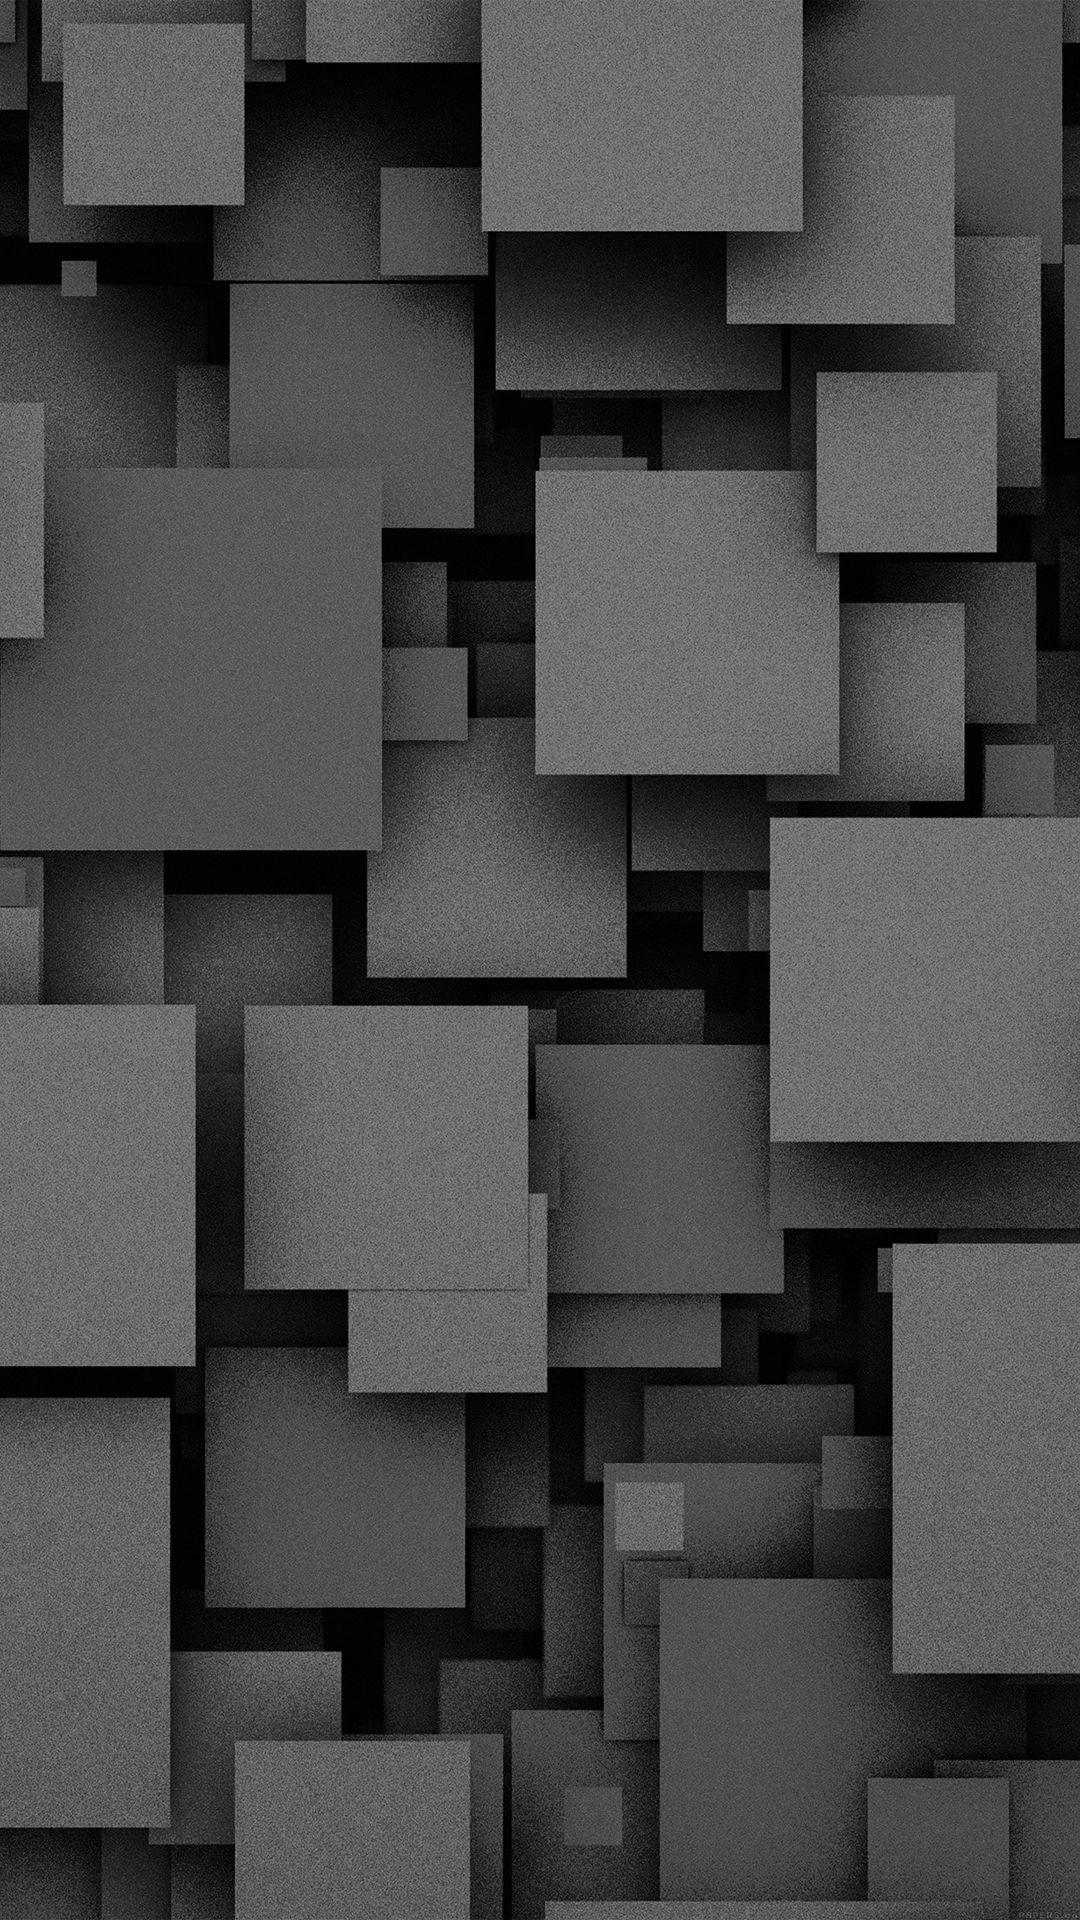 Square Party Dark Pattern Iphone 8 Wallpapers Iphone Wallpaper